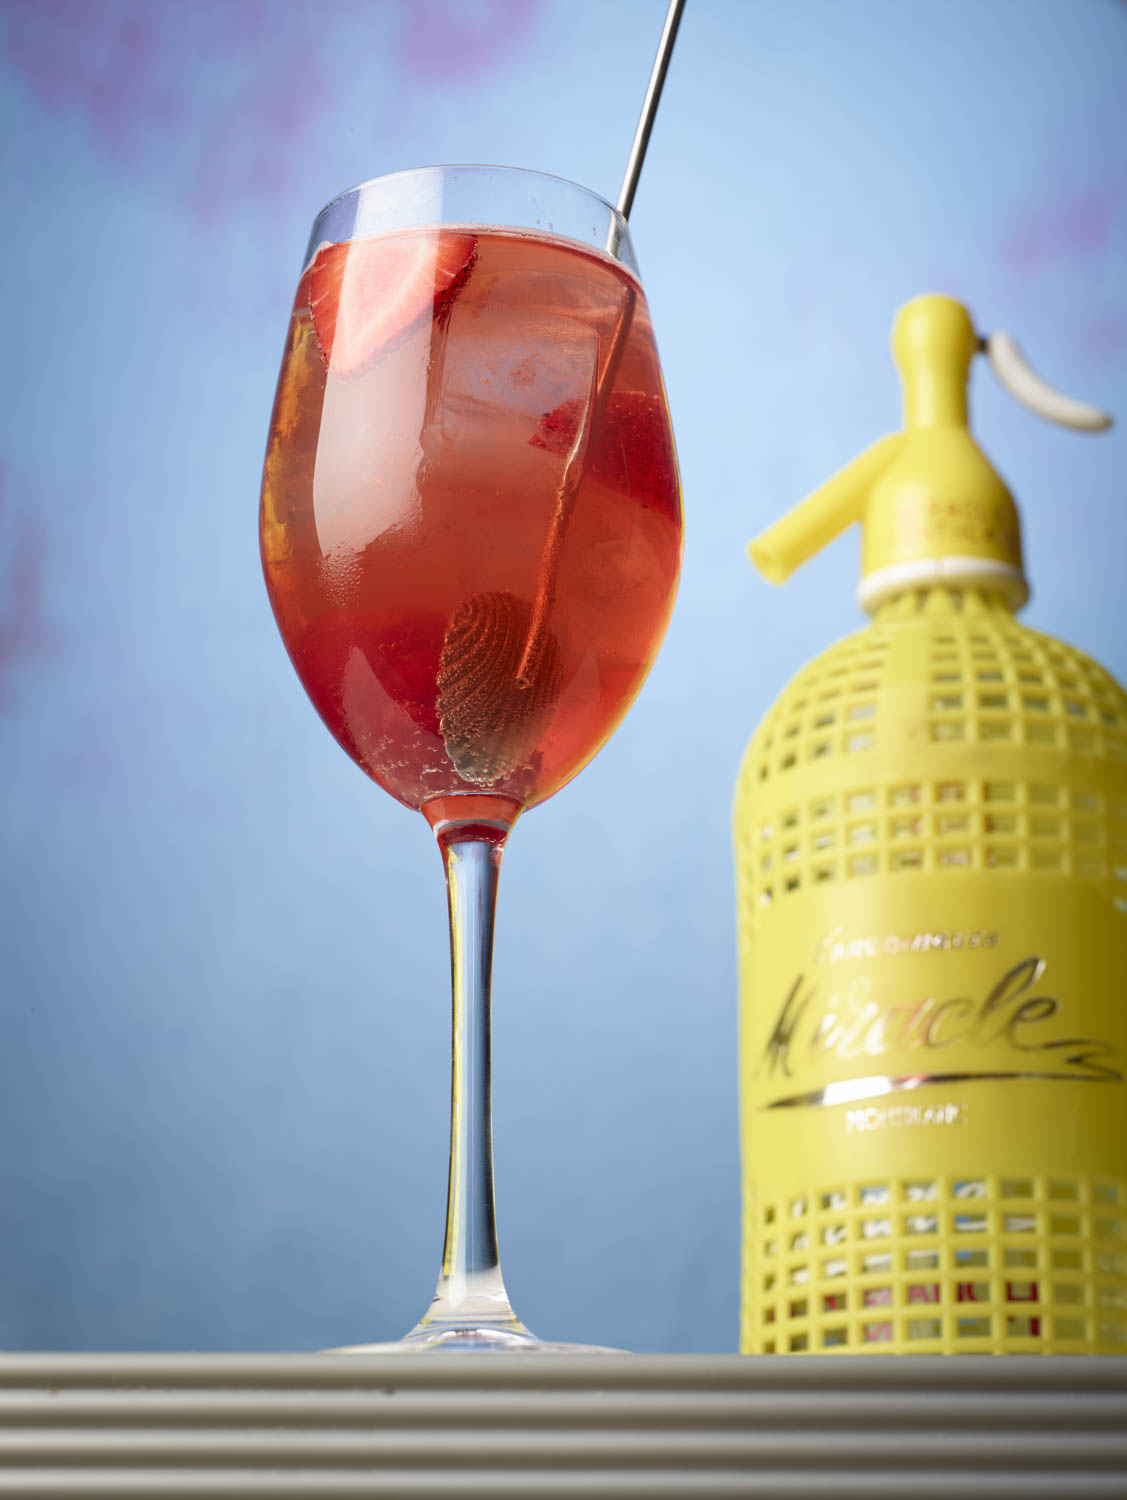 DC Spritz - 1.5oz Capitoline Tiber over ice in a wine glassProseccoClub sodaGarnihs with a slice of orange.